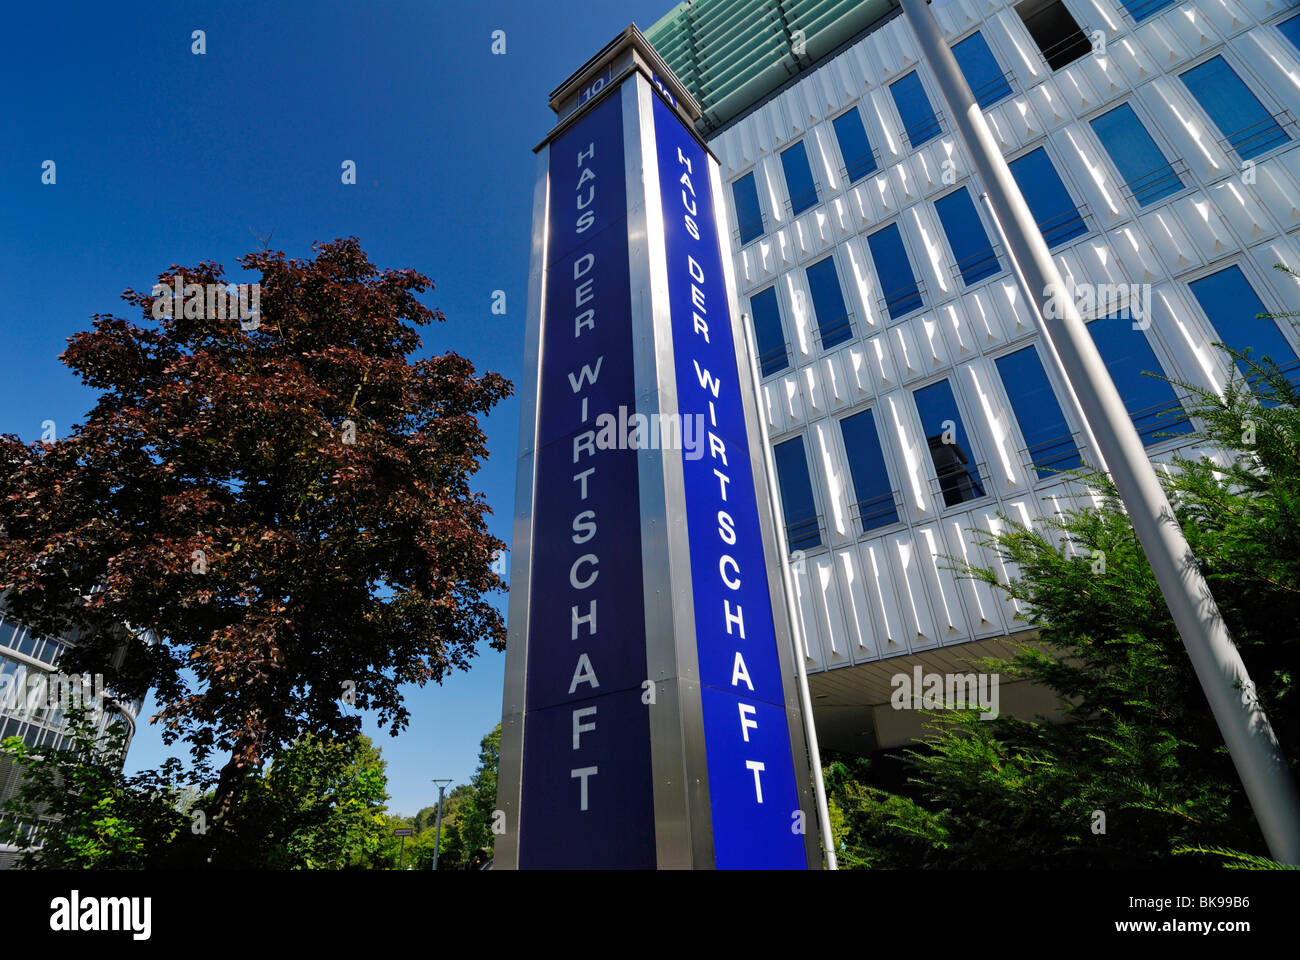 Haus der Wirtschaft, house of economy in the City North, Winterhude, Hamburg, Germany, Europe - Stock Image